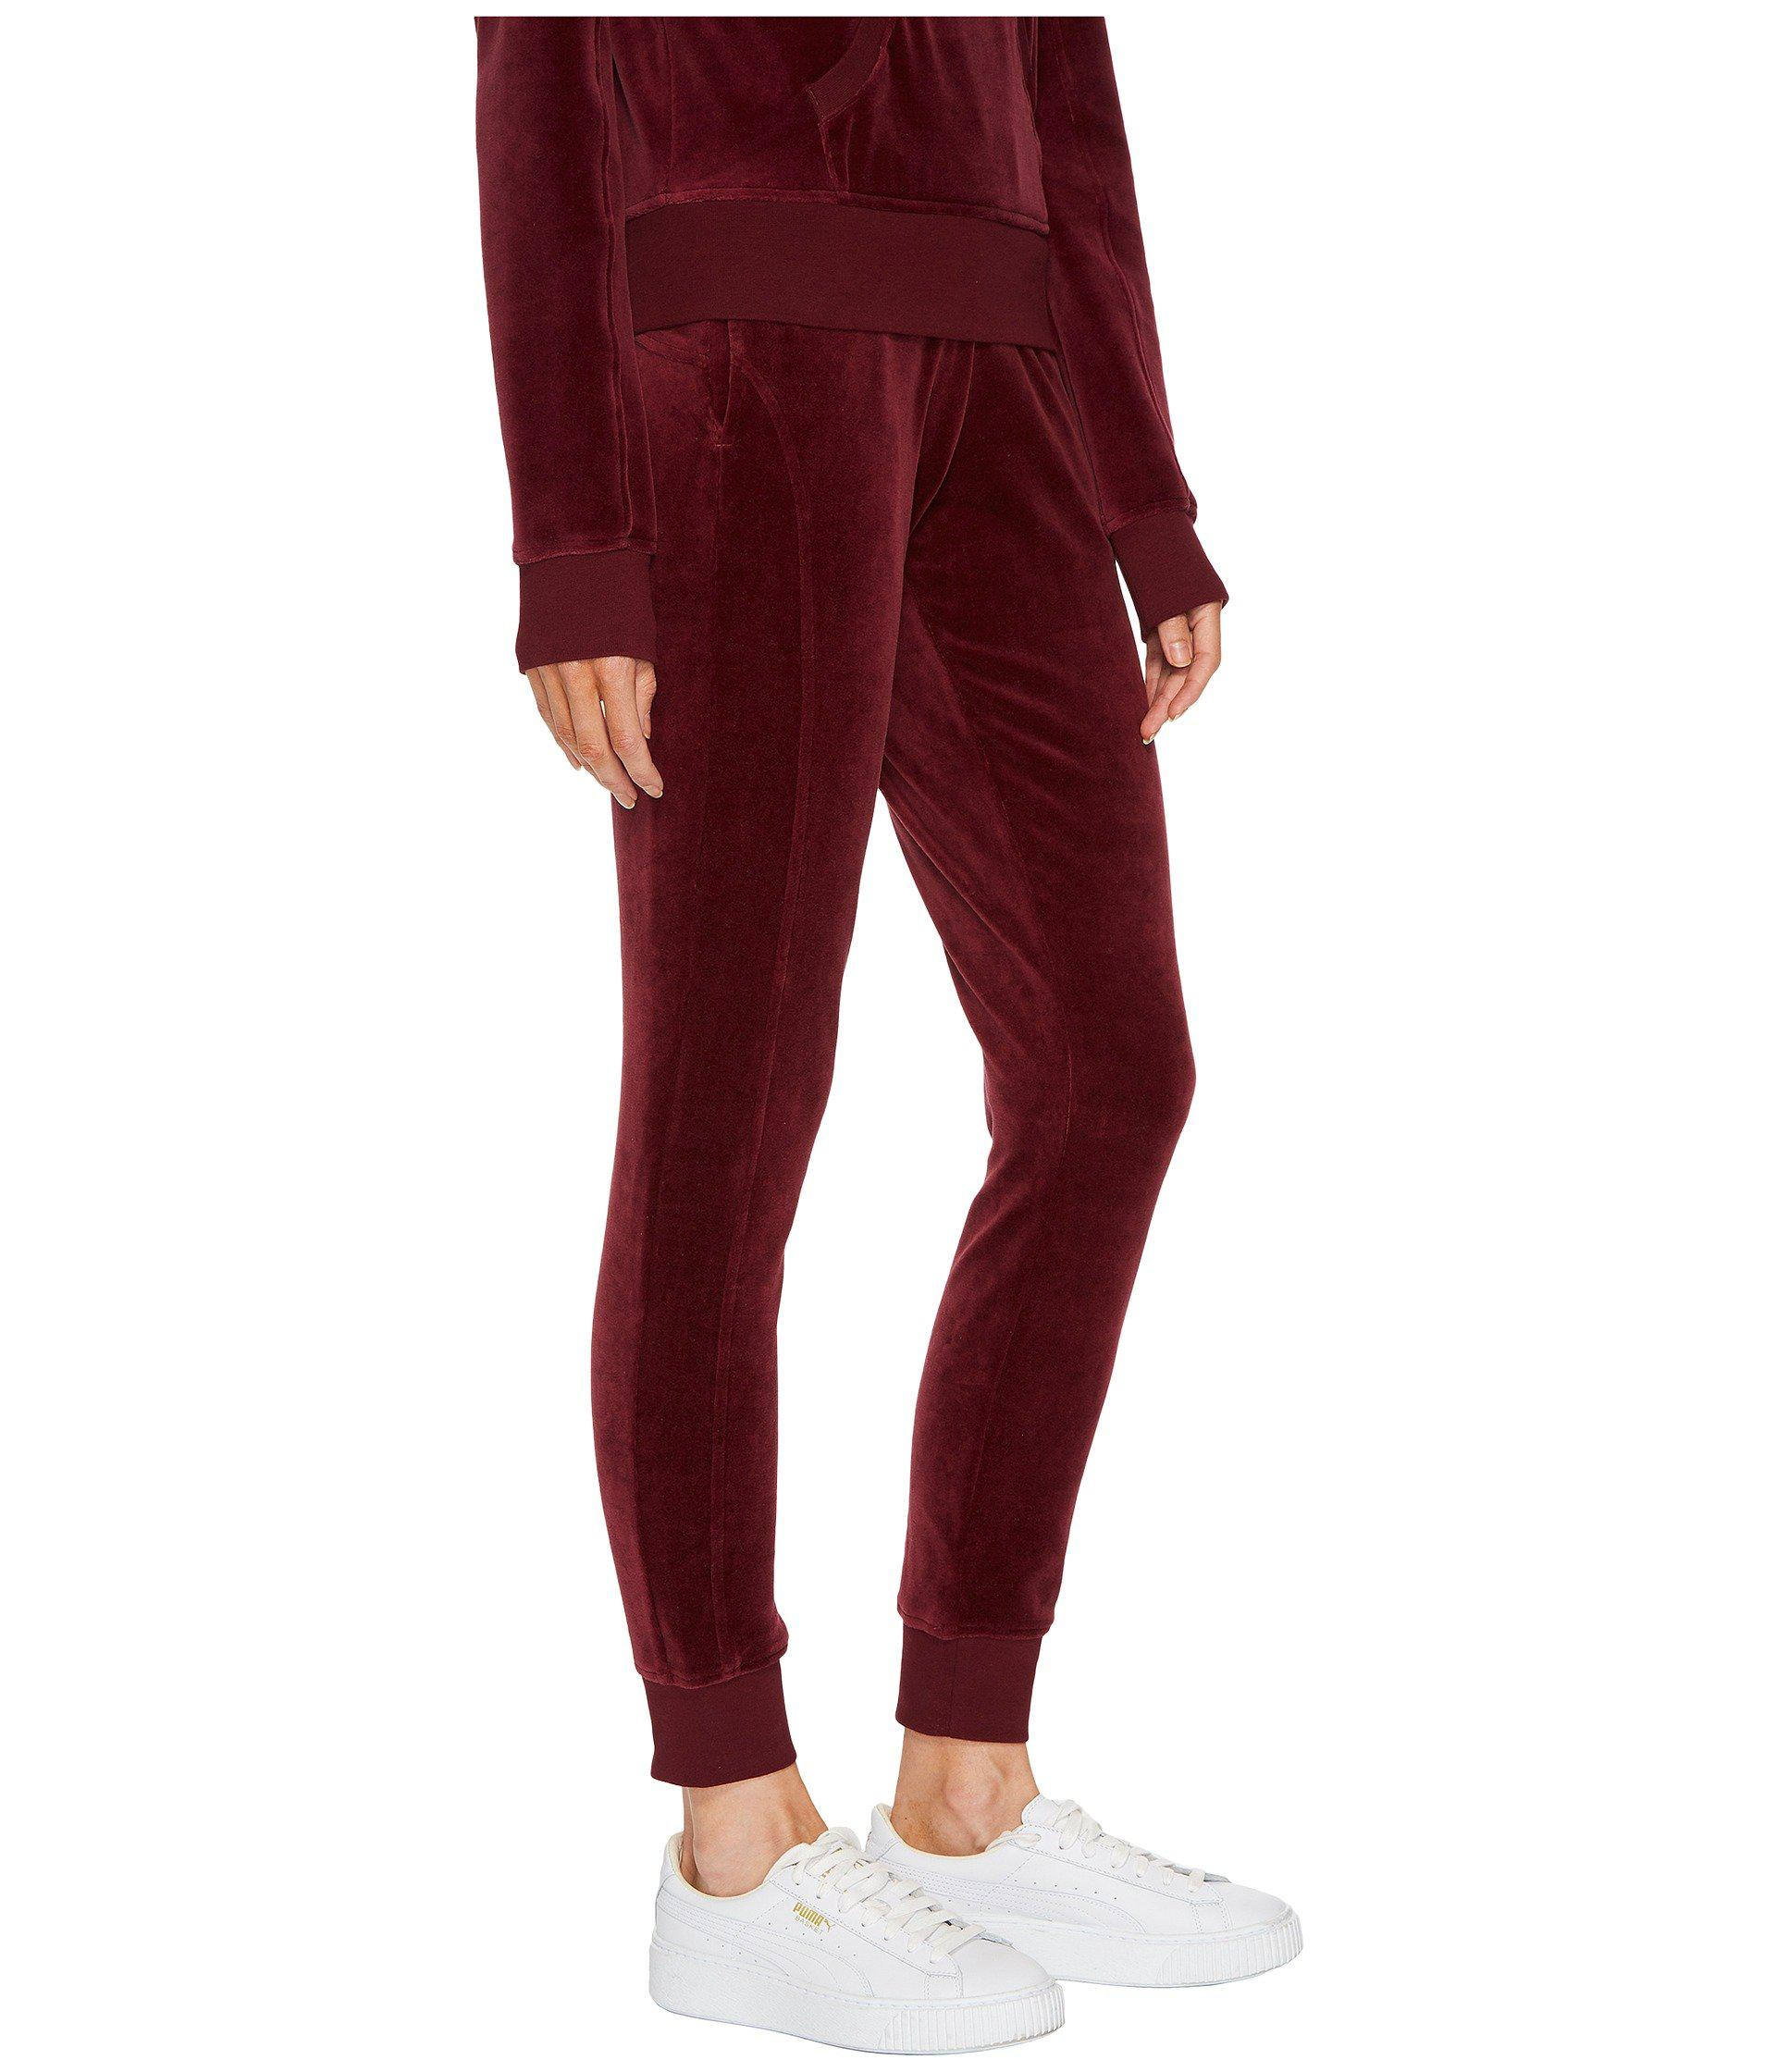 5906cd813d1c Lyst - PUMA X Fenty By Rihanna Velour Fitted Track Pants in Red ...